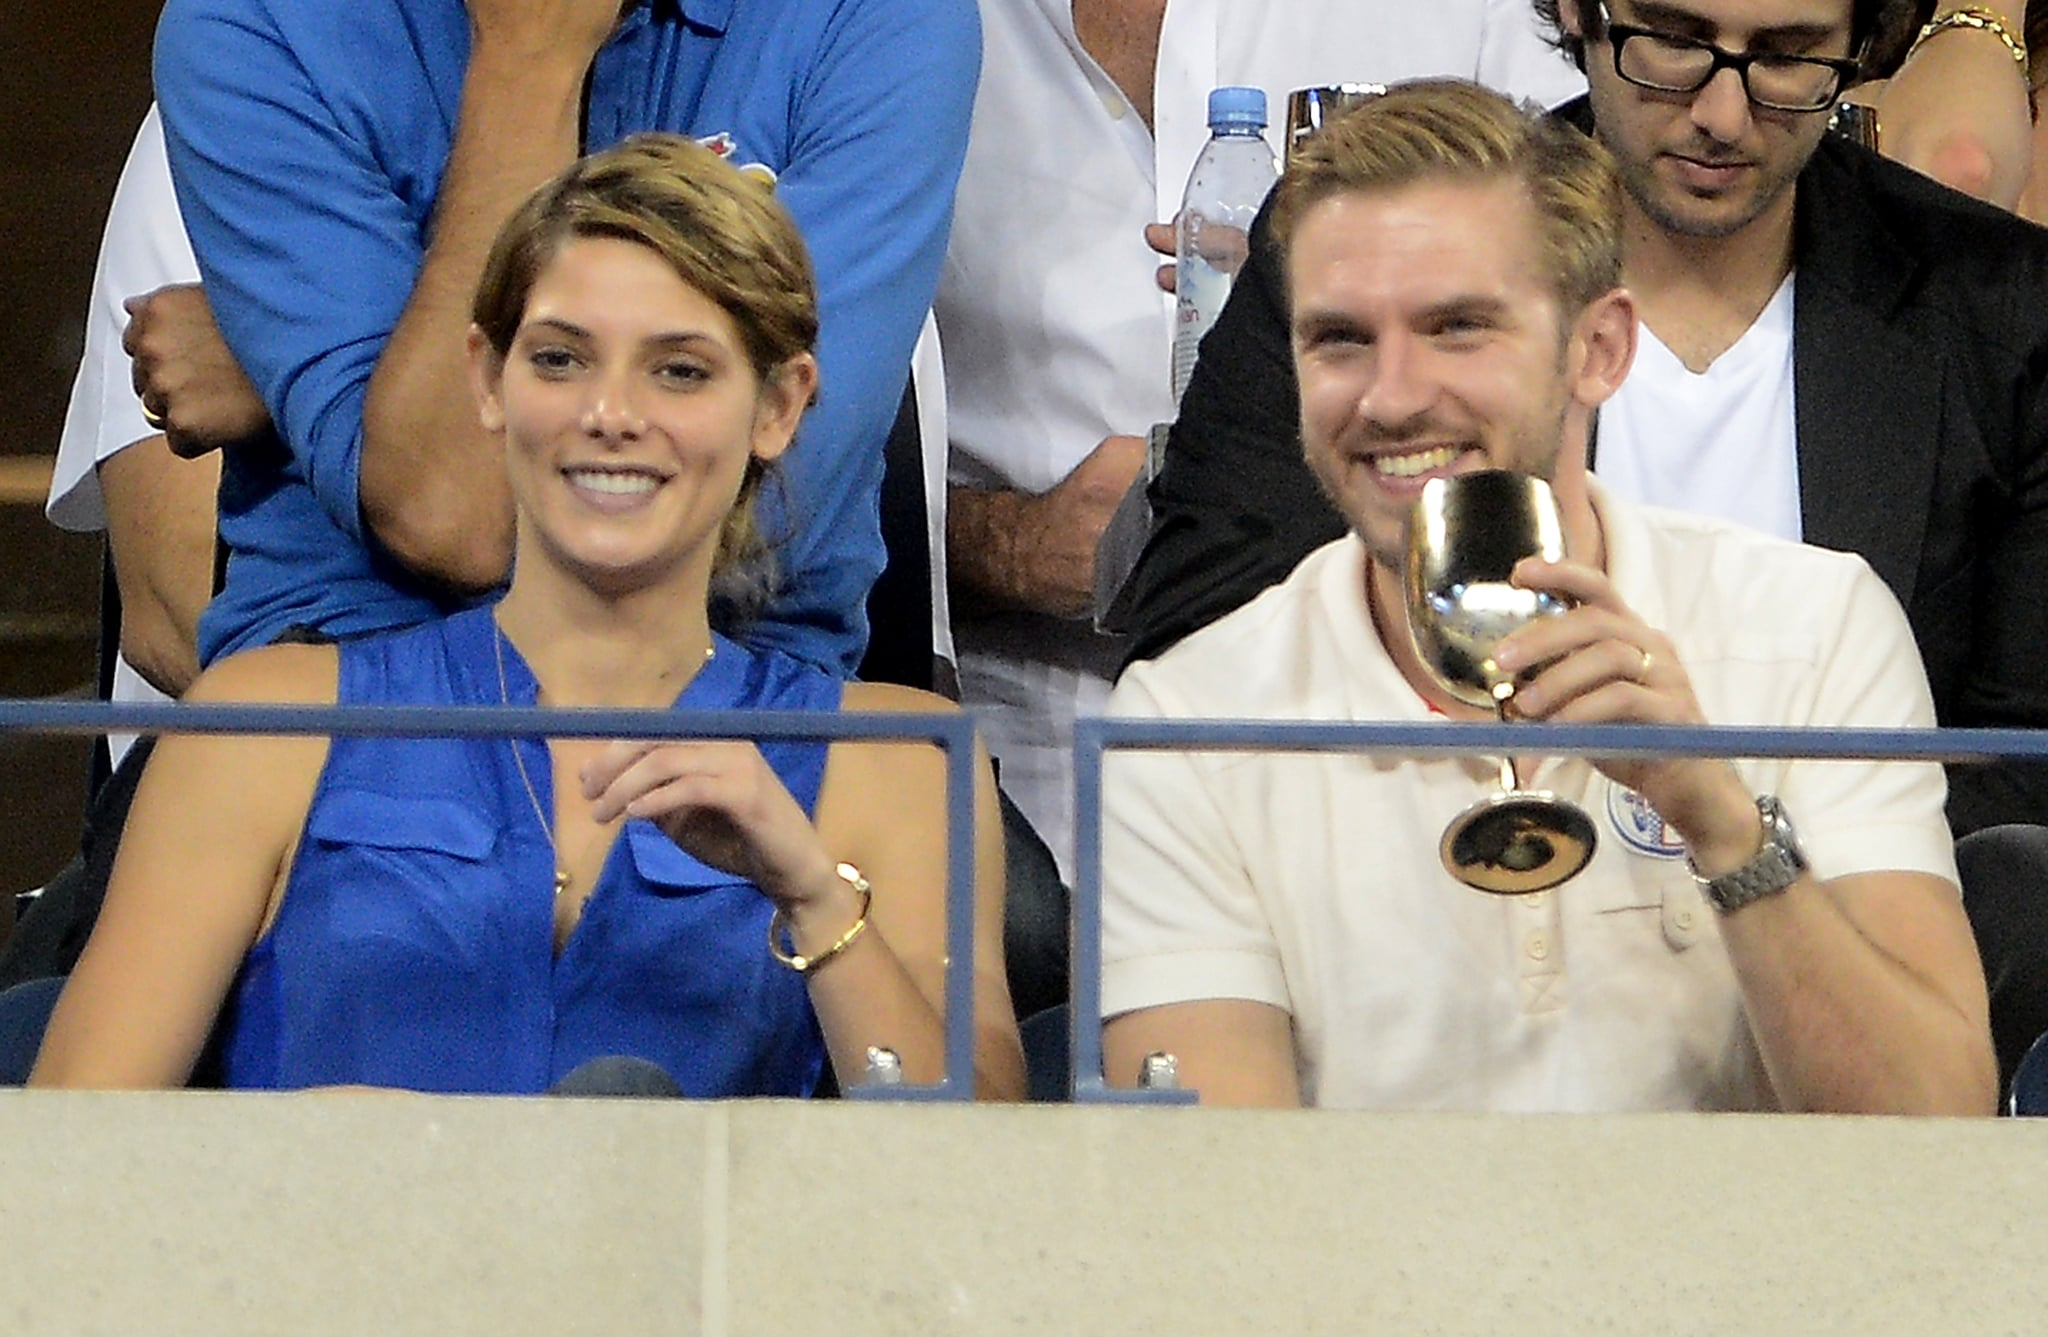 Ashley Greene was among the attendees at the US Open.